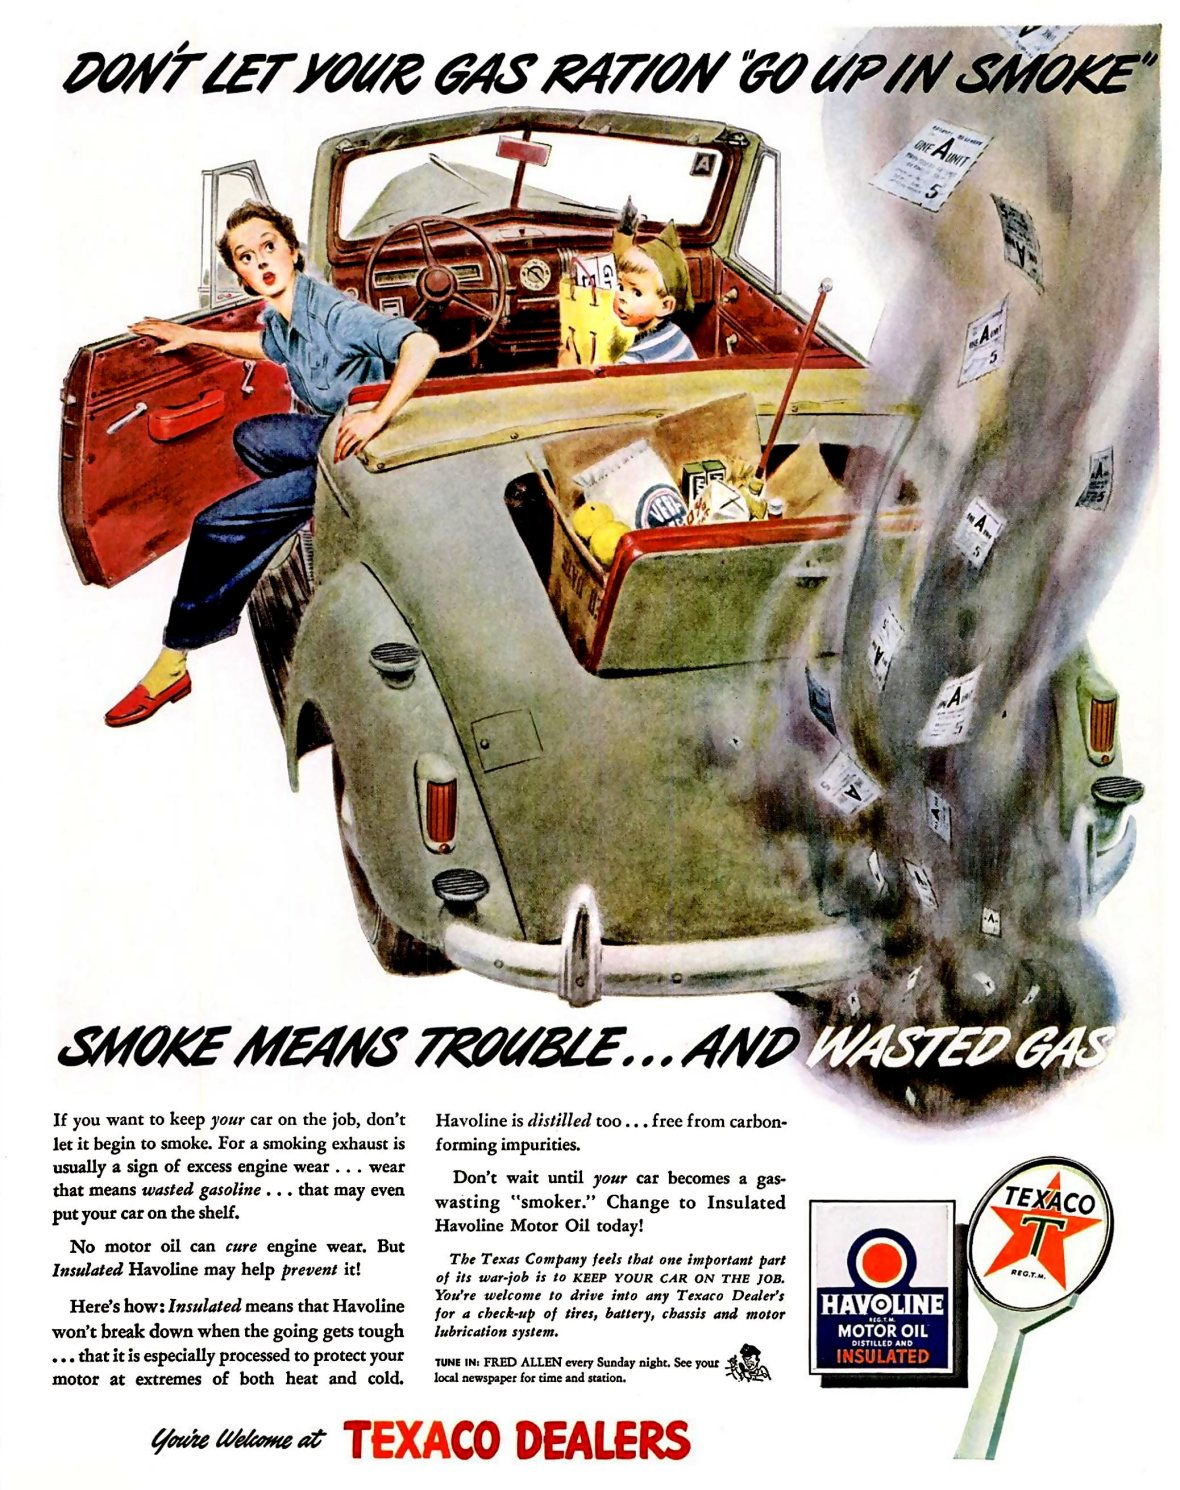 Texaco Havoline Motor Oil - 1943